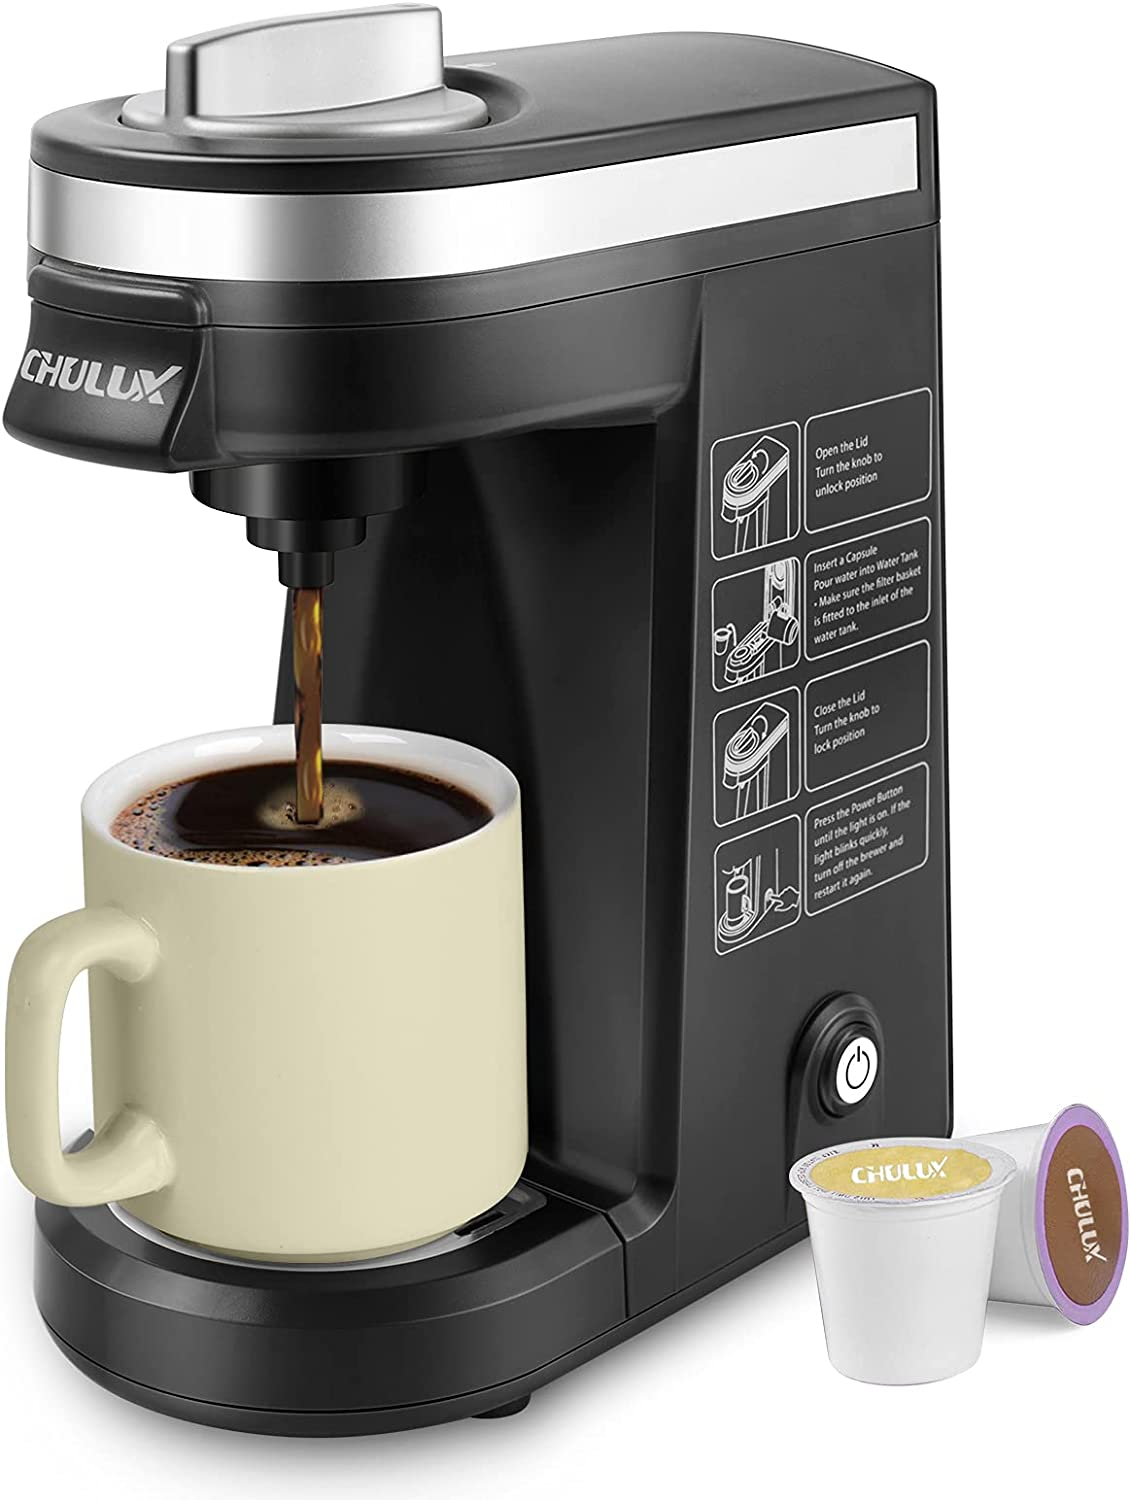 CHULUX Gorgeous Single Serve Coffee Maker Today's only Capsule w Cup Brewer for